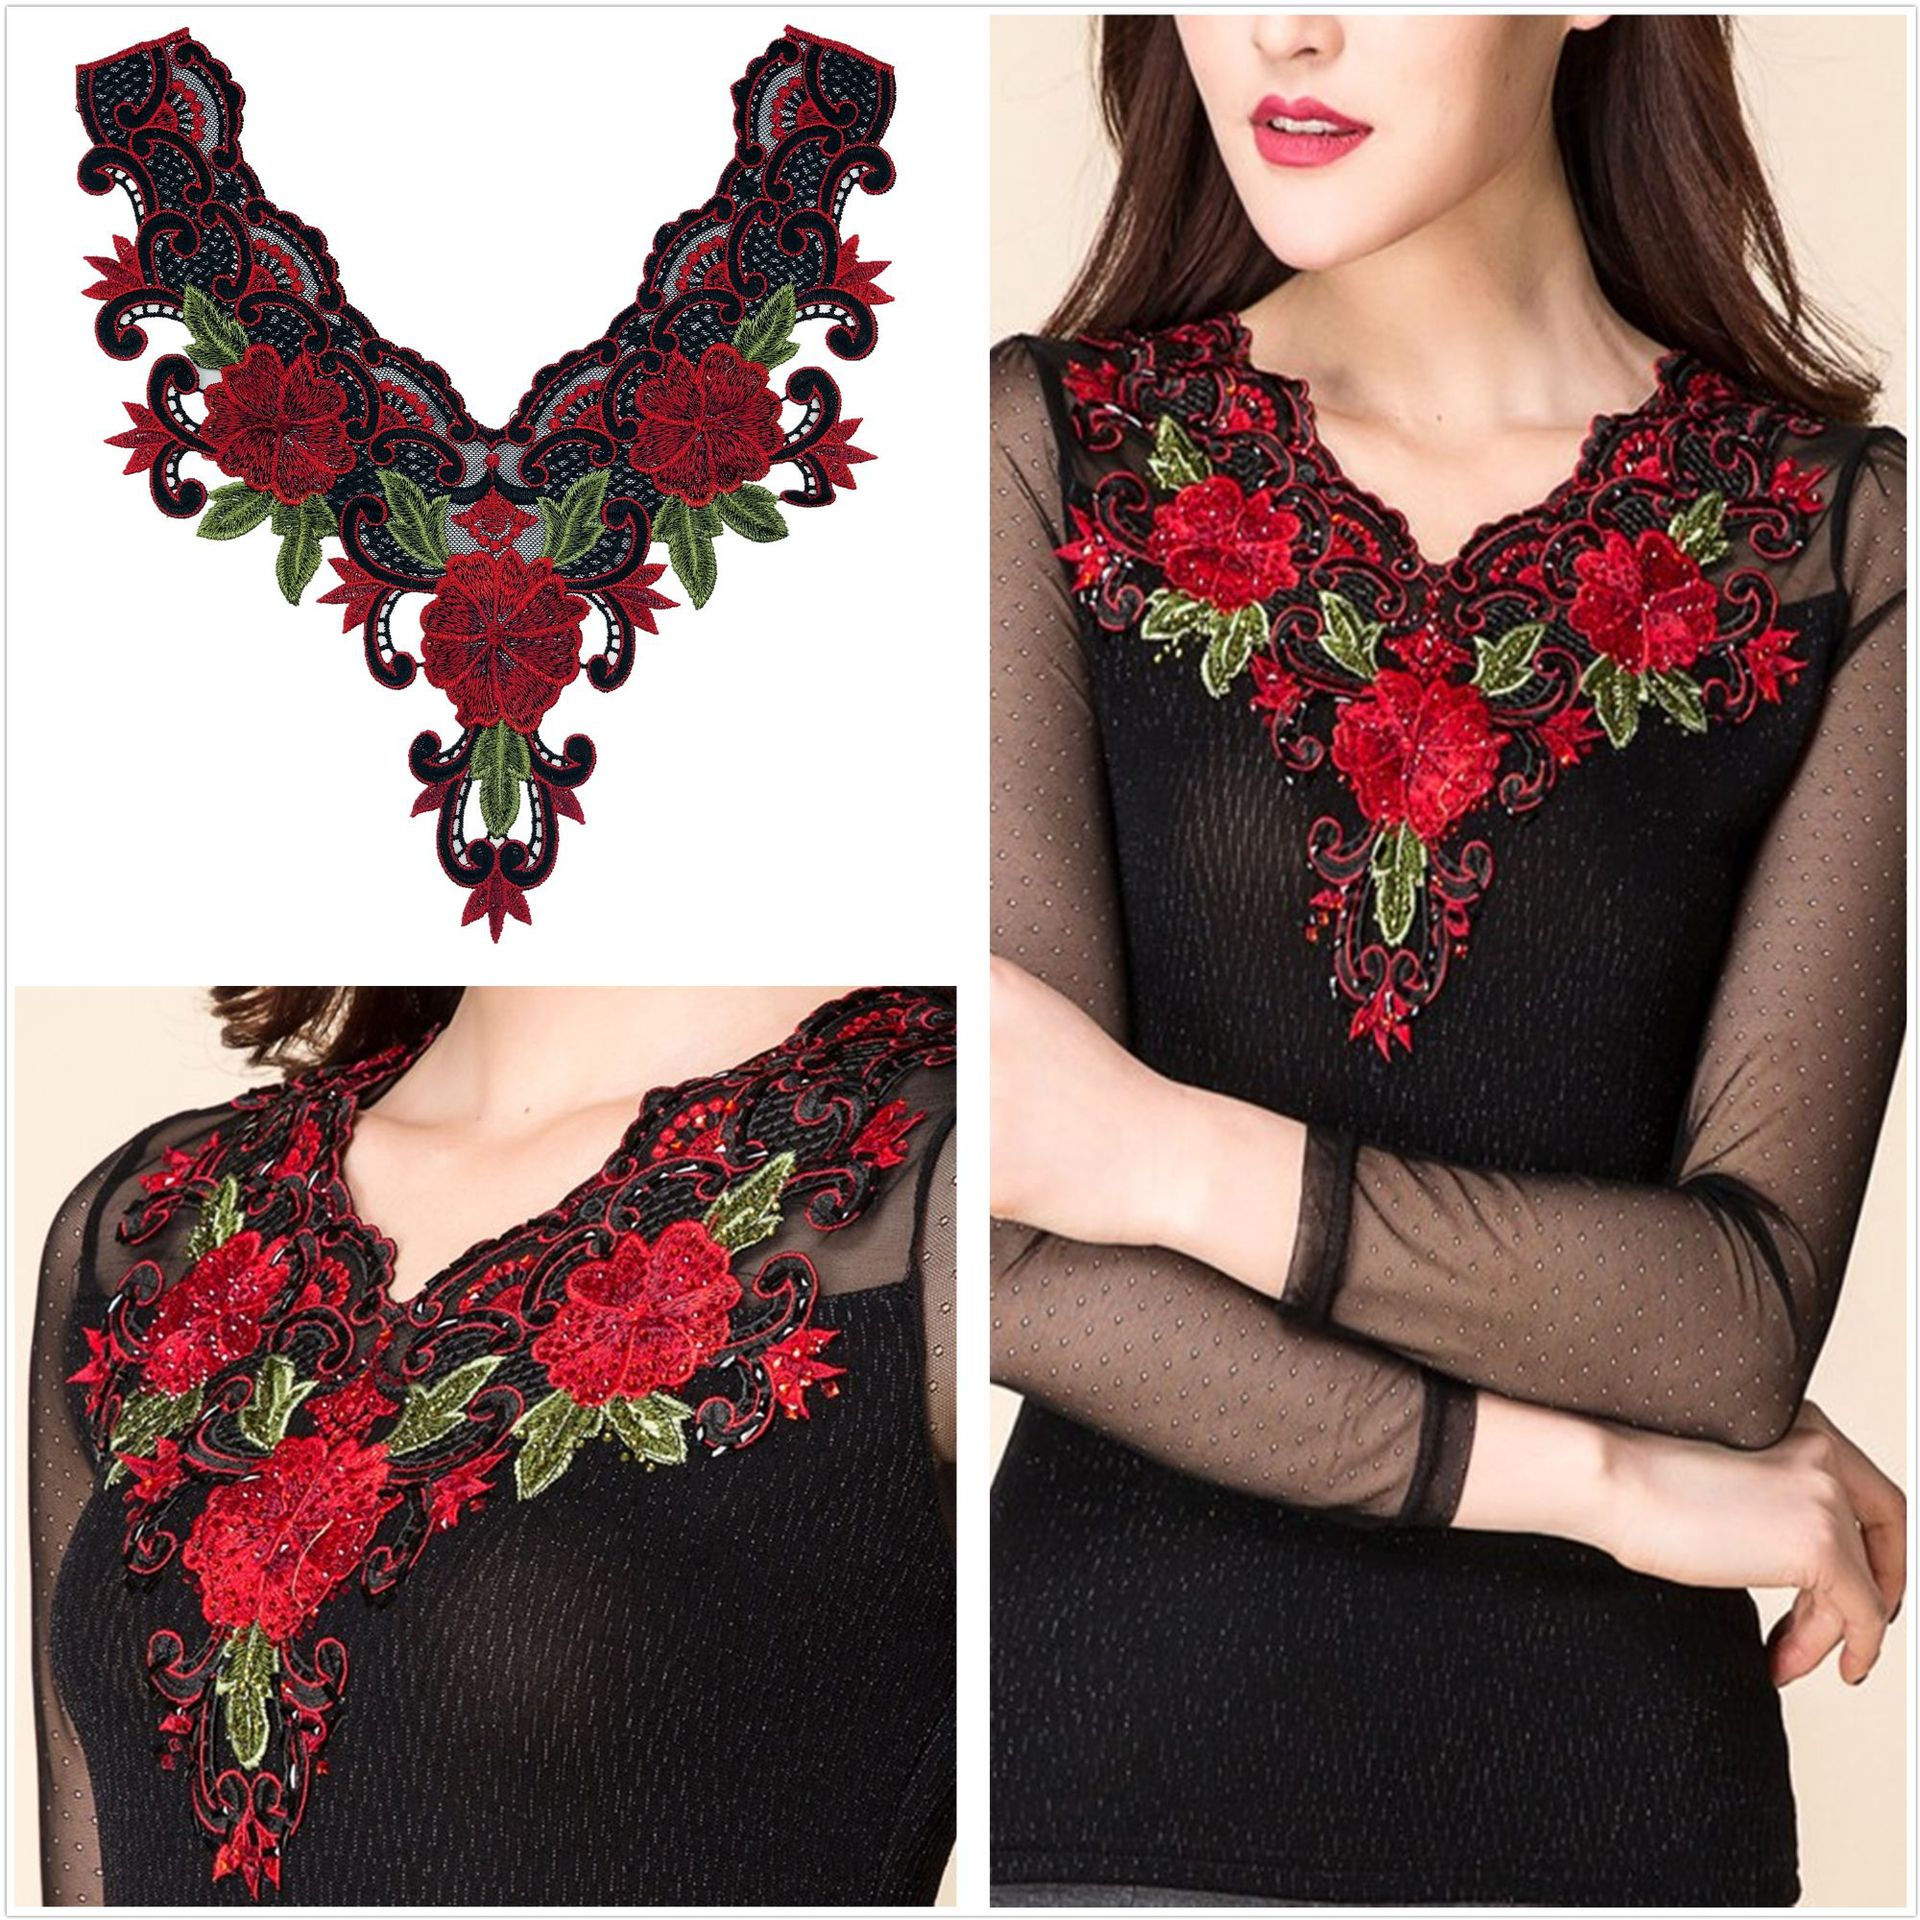 Godier Fashion Motifs Neck Applique Flower Embroidery Patches Lace Fabric Diy